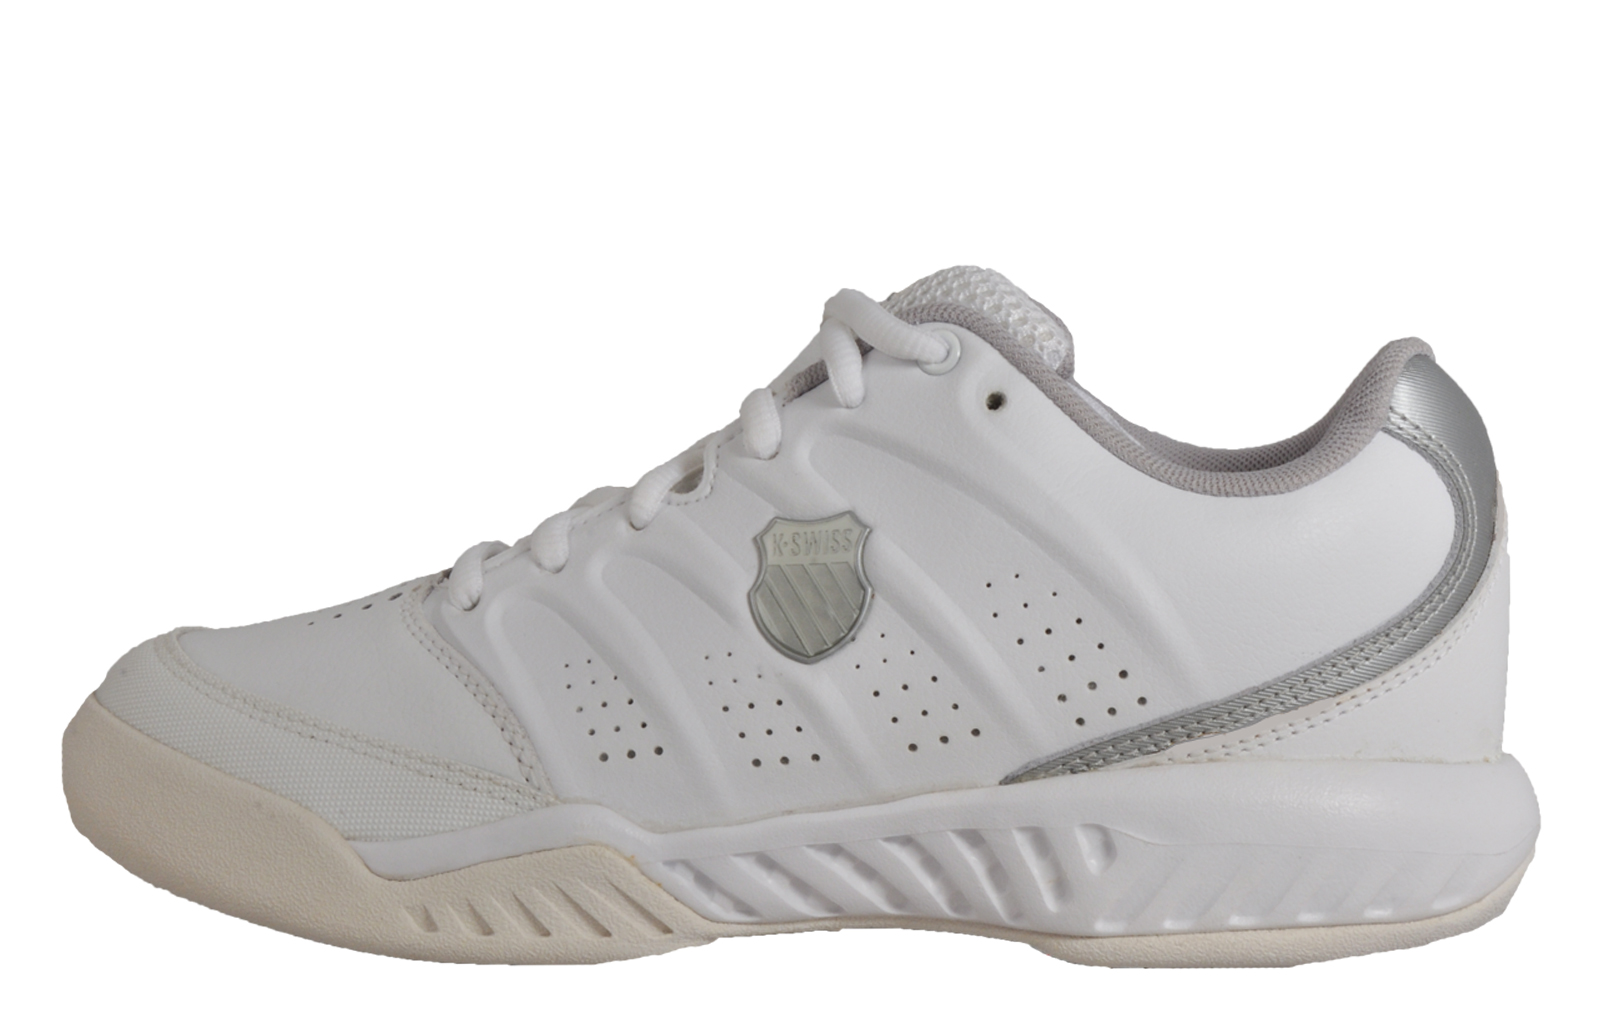 515718bf16f5 K Swiss Ultrascendor II Mens Court Fitness Gym Leather Trainers White UK 9  Only